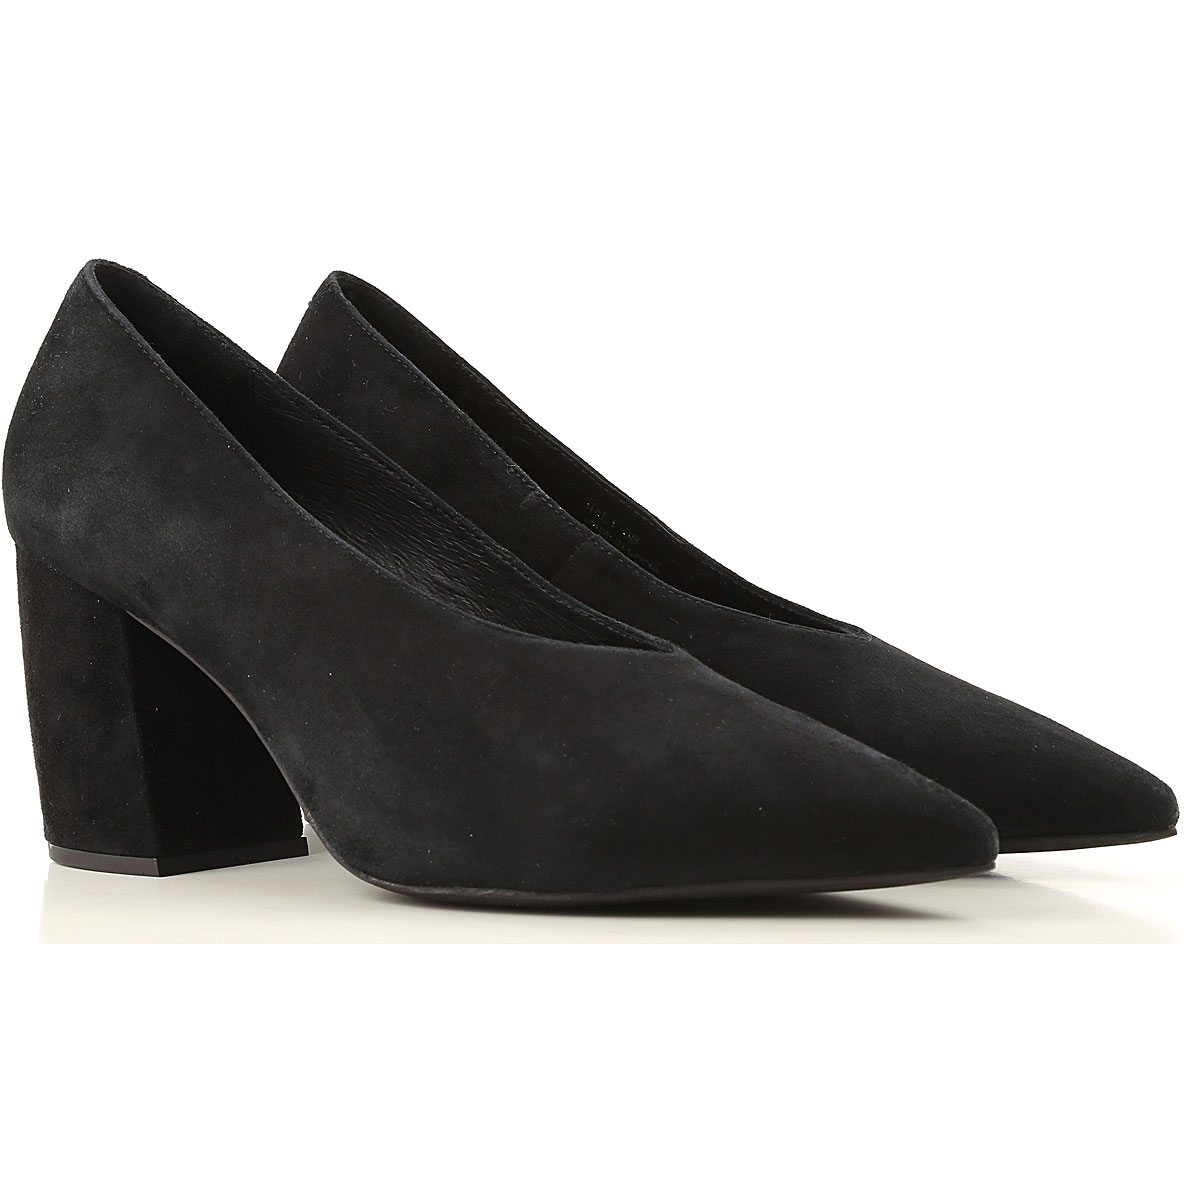 Jeffrey Campbell Pumps & High Heels for Women On Sale in Outlet, Black, Suede leather, 2019, 6 7 9